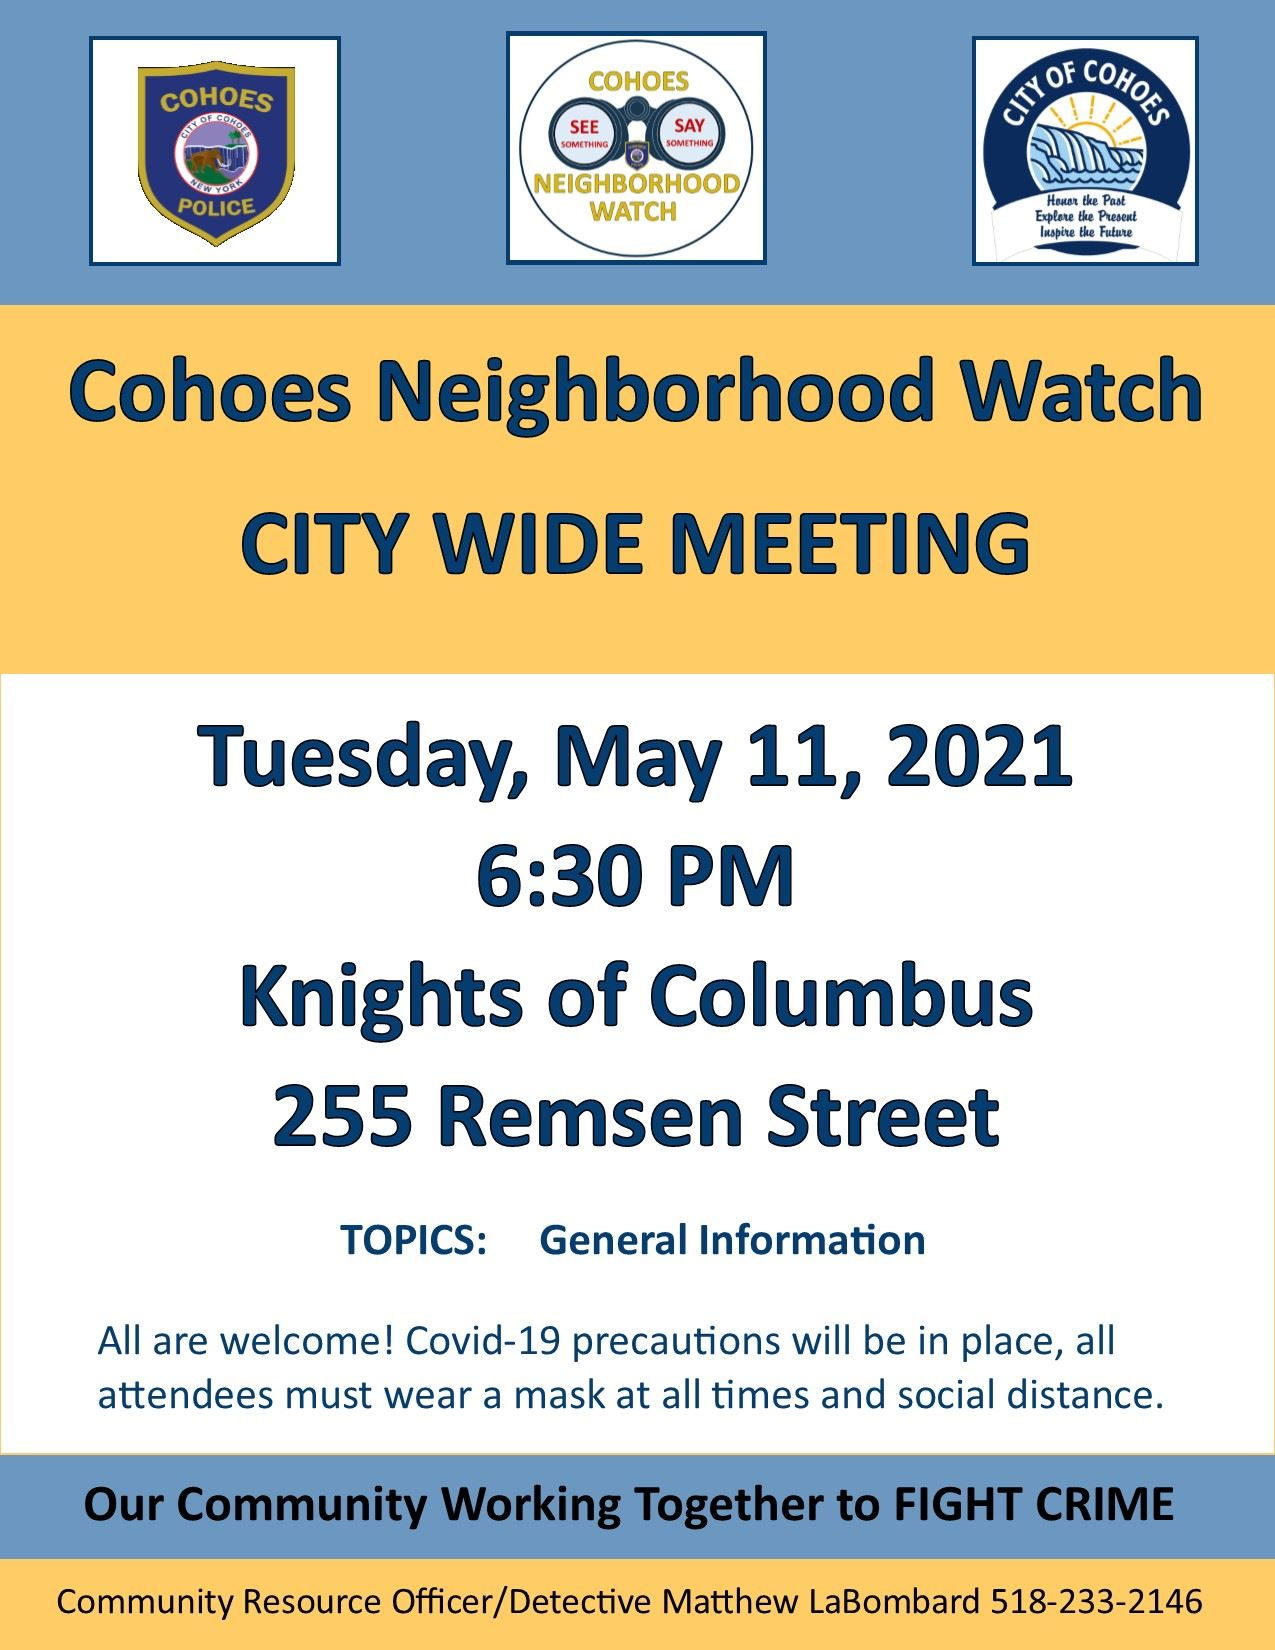 City Wide Meeting Flyer 5-11-21